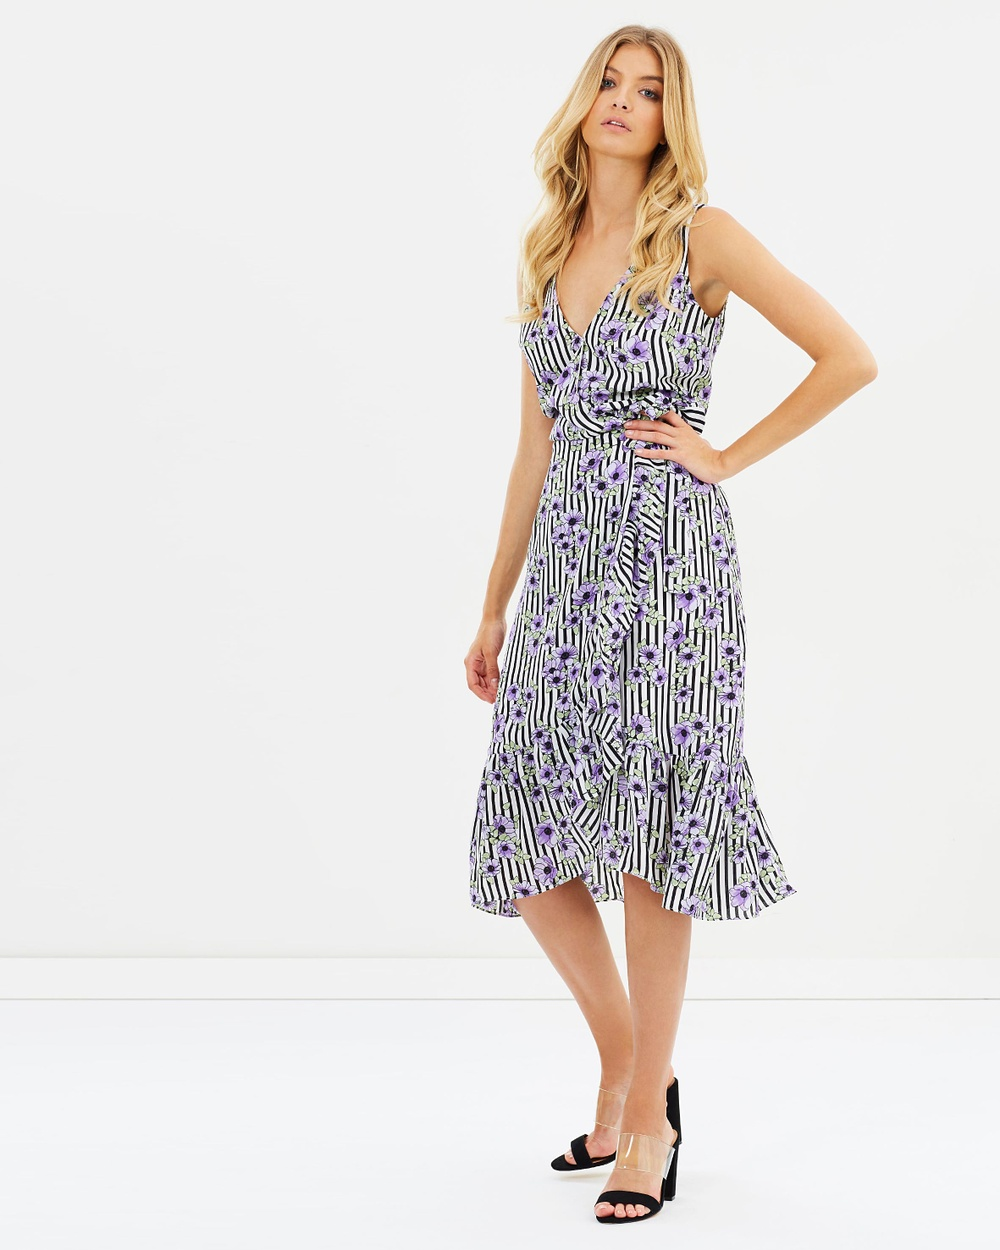 Atmos & Here ICONIC EXCLUSIVE Lavender Wrap Dress Printed Dresses Polka Line ICONIC EXCLUSIVE Lavender Wrap Dress